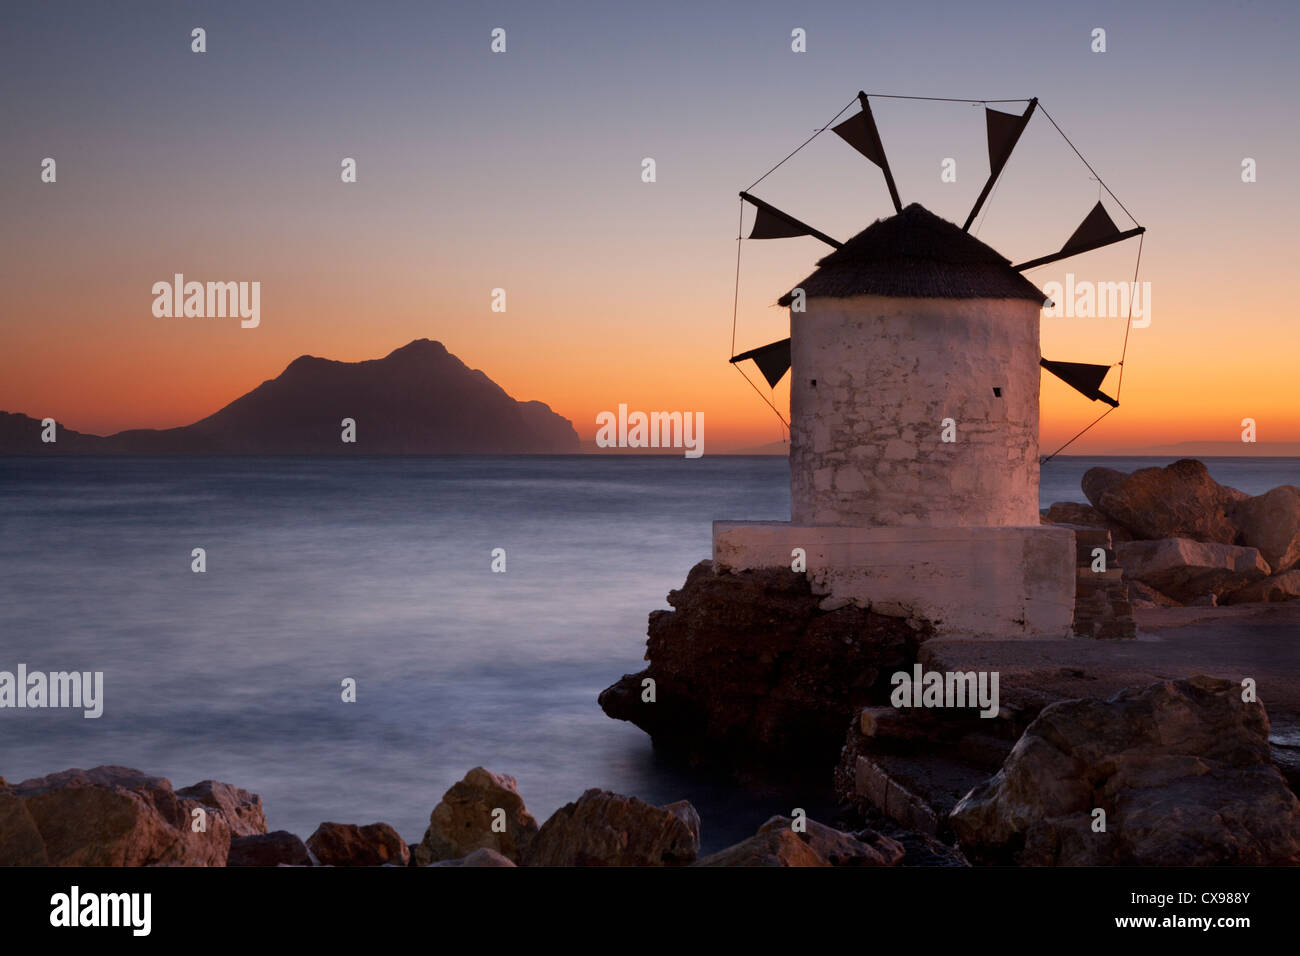 Windmill on Aigiali Harbour on Amorgos island in Greece - Stock Image